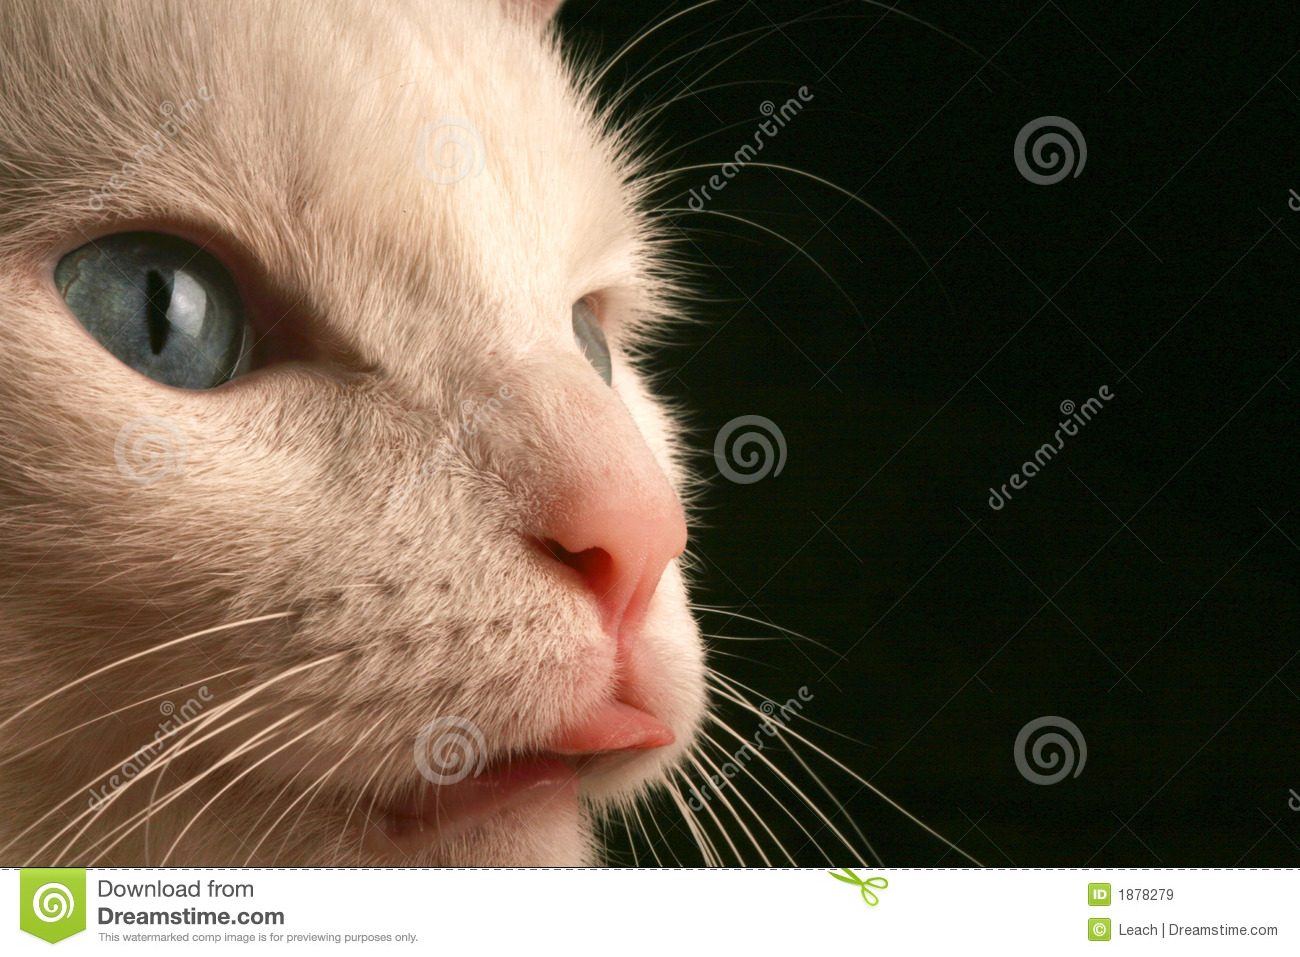 Up Close View of Cats Face